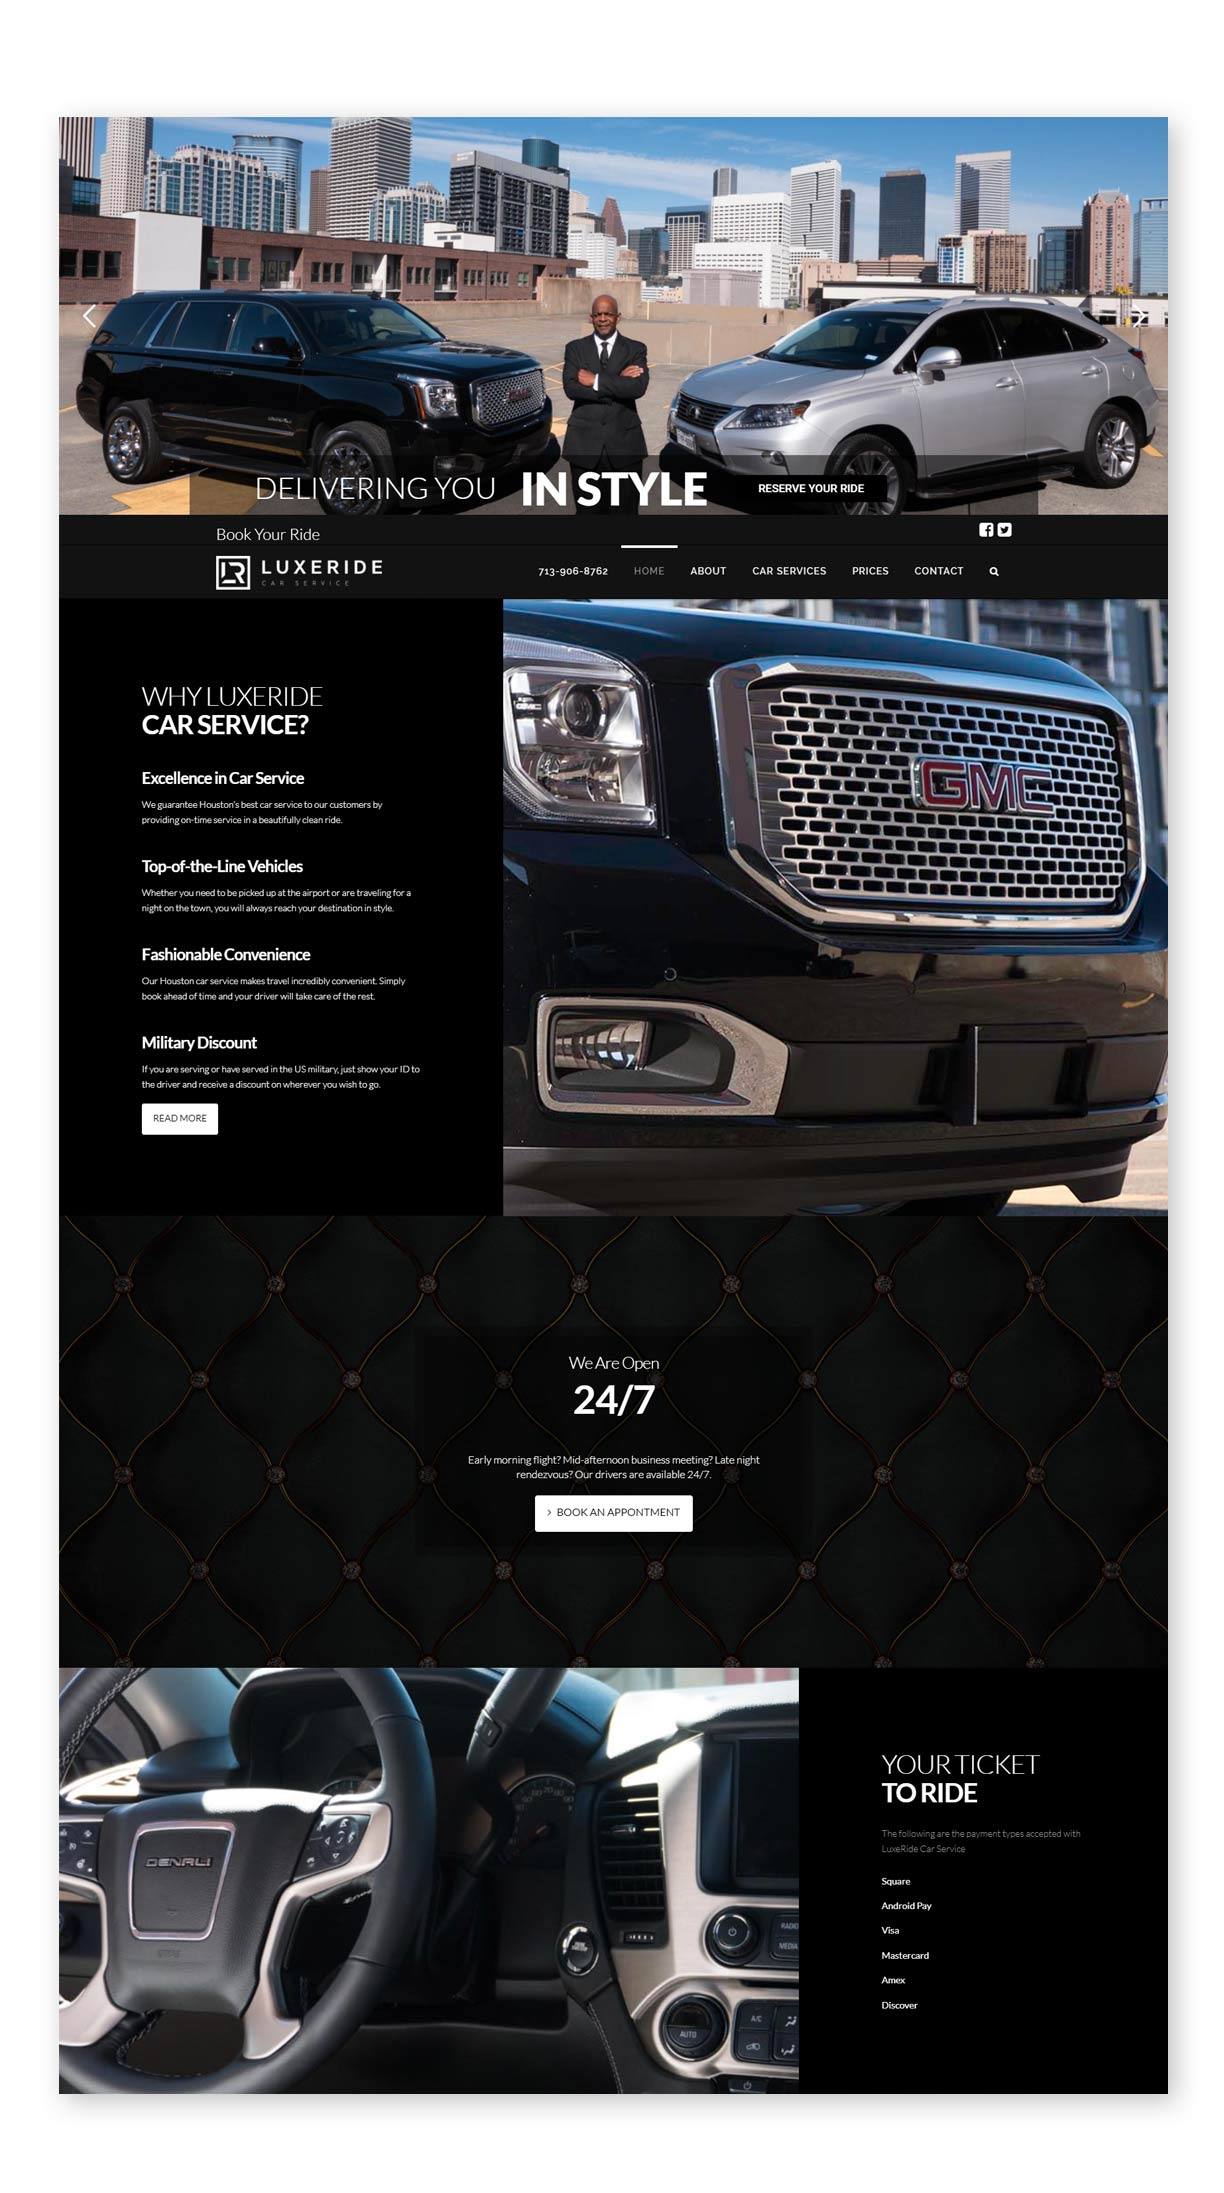 LuxeRide Car Service Website